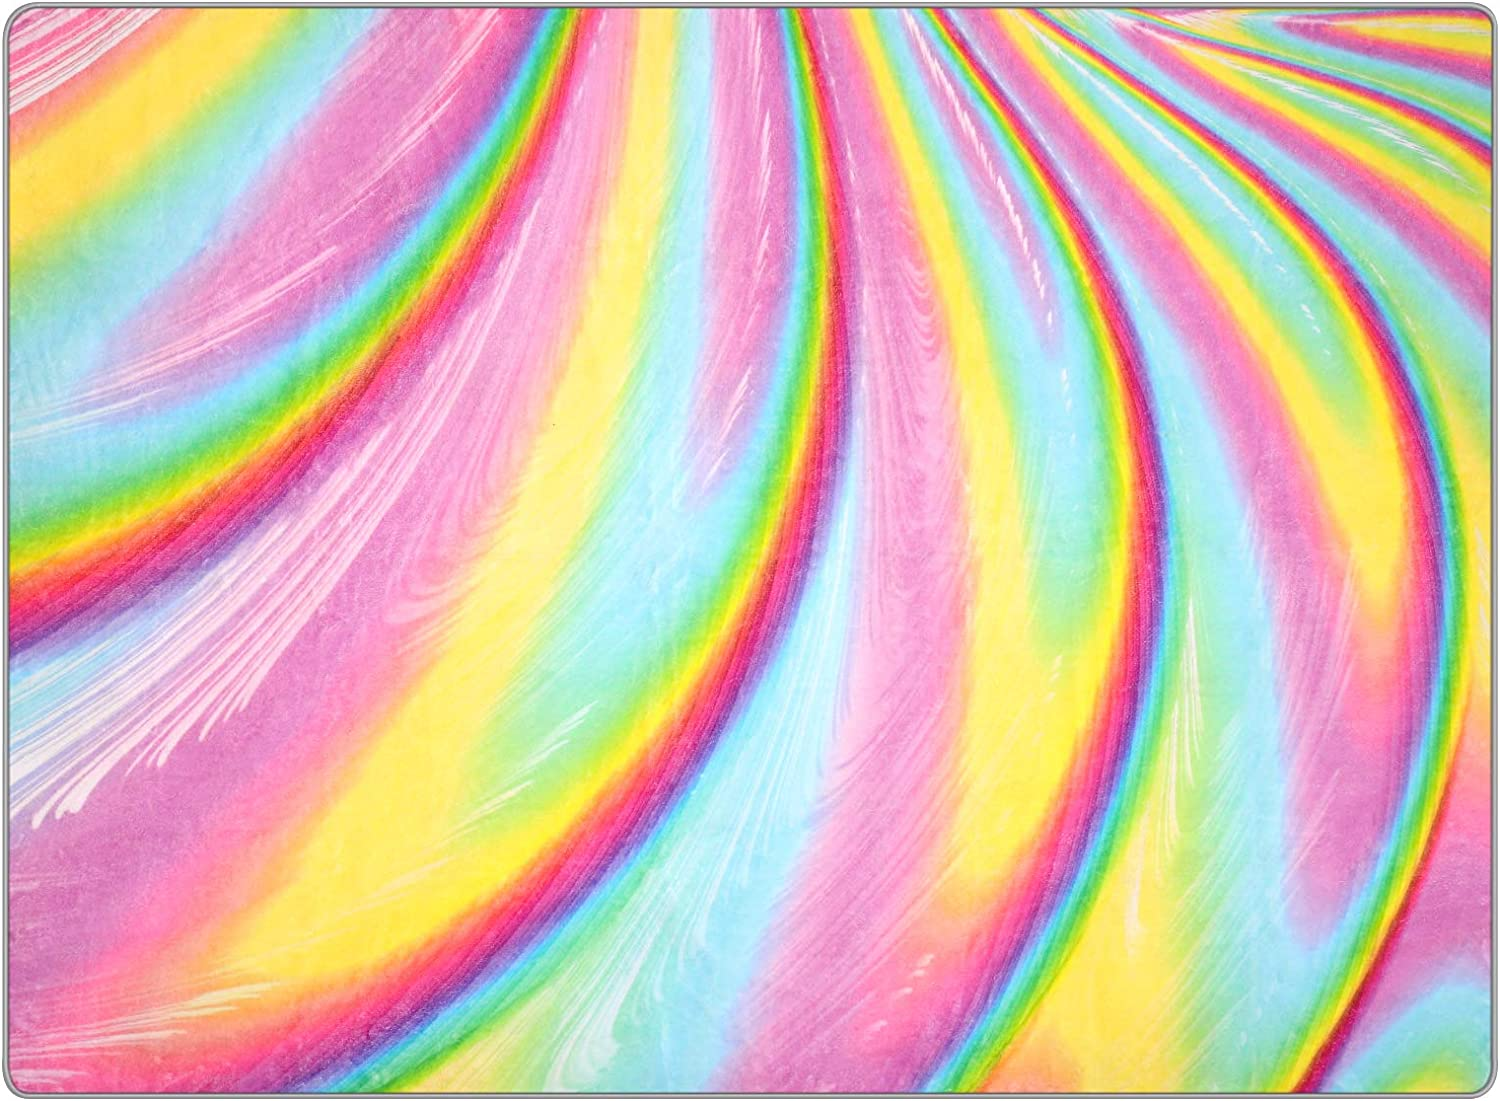 PartyKindom Kids Rug for Girls Room with Non-Slip Design - Rainbow Area Rugs for Children Kids Bedroom Play Room Nursery Colorful Fluffy Carpet Home Decor (5 x 6.5 Ft)